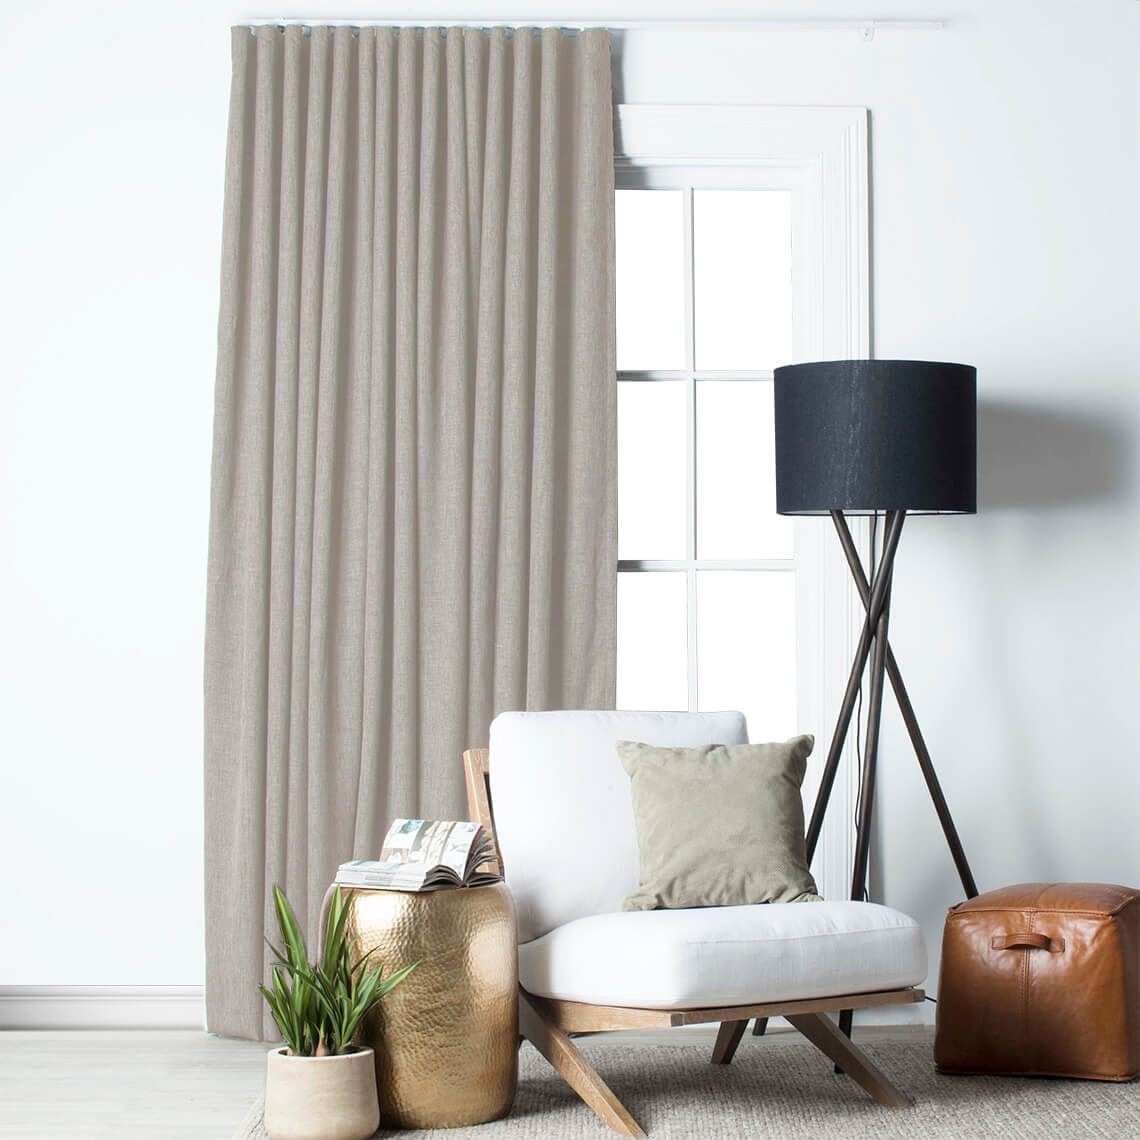 Lyndon Blockout S Fold Curtain Size W 280cm x D 1cm x H 280cm in Stone 100% Polyester Freedom by Freedom, a Curtains for sale on Style Sourcebook